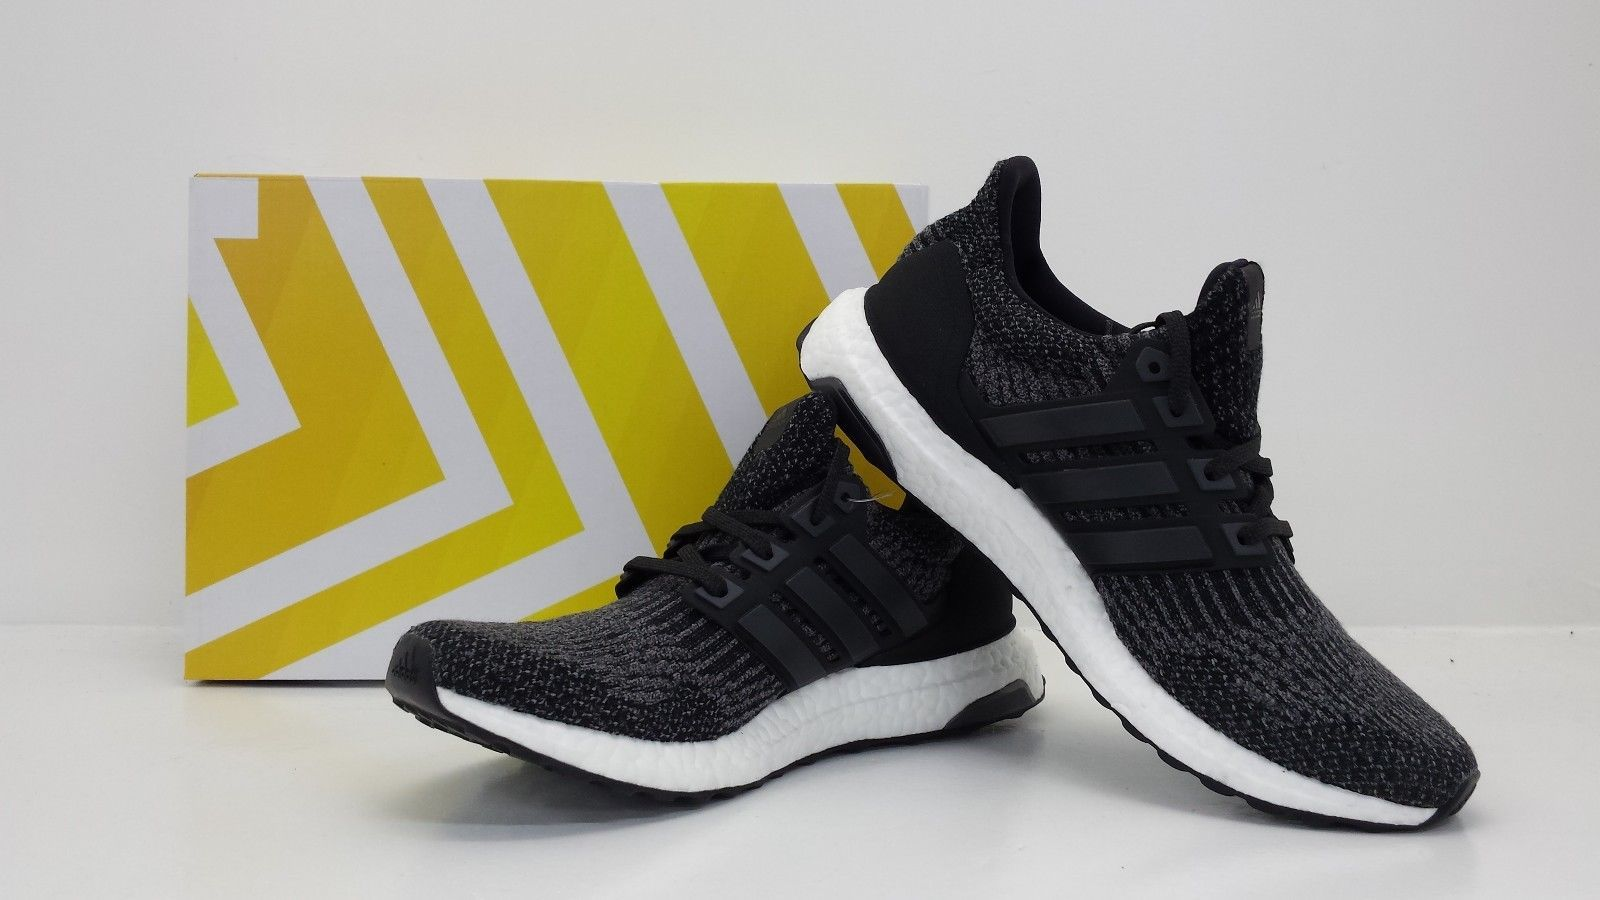 2ffedf962d0 Adidas UltraBOOST Running Shoes Core Utility Black S80731 - BRAND NEW IN  BOX!!